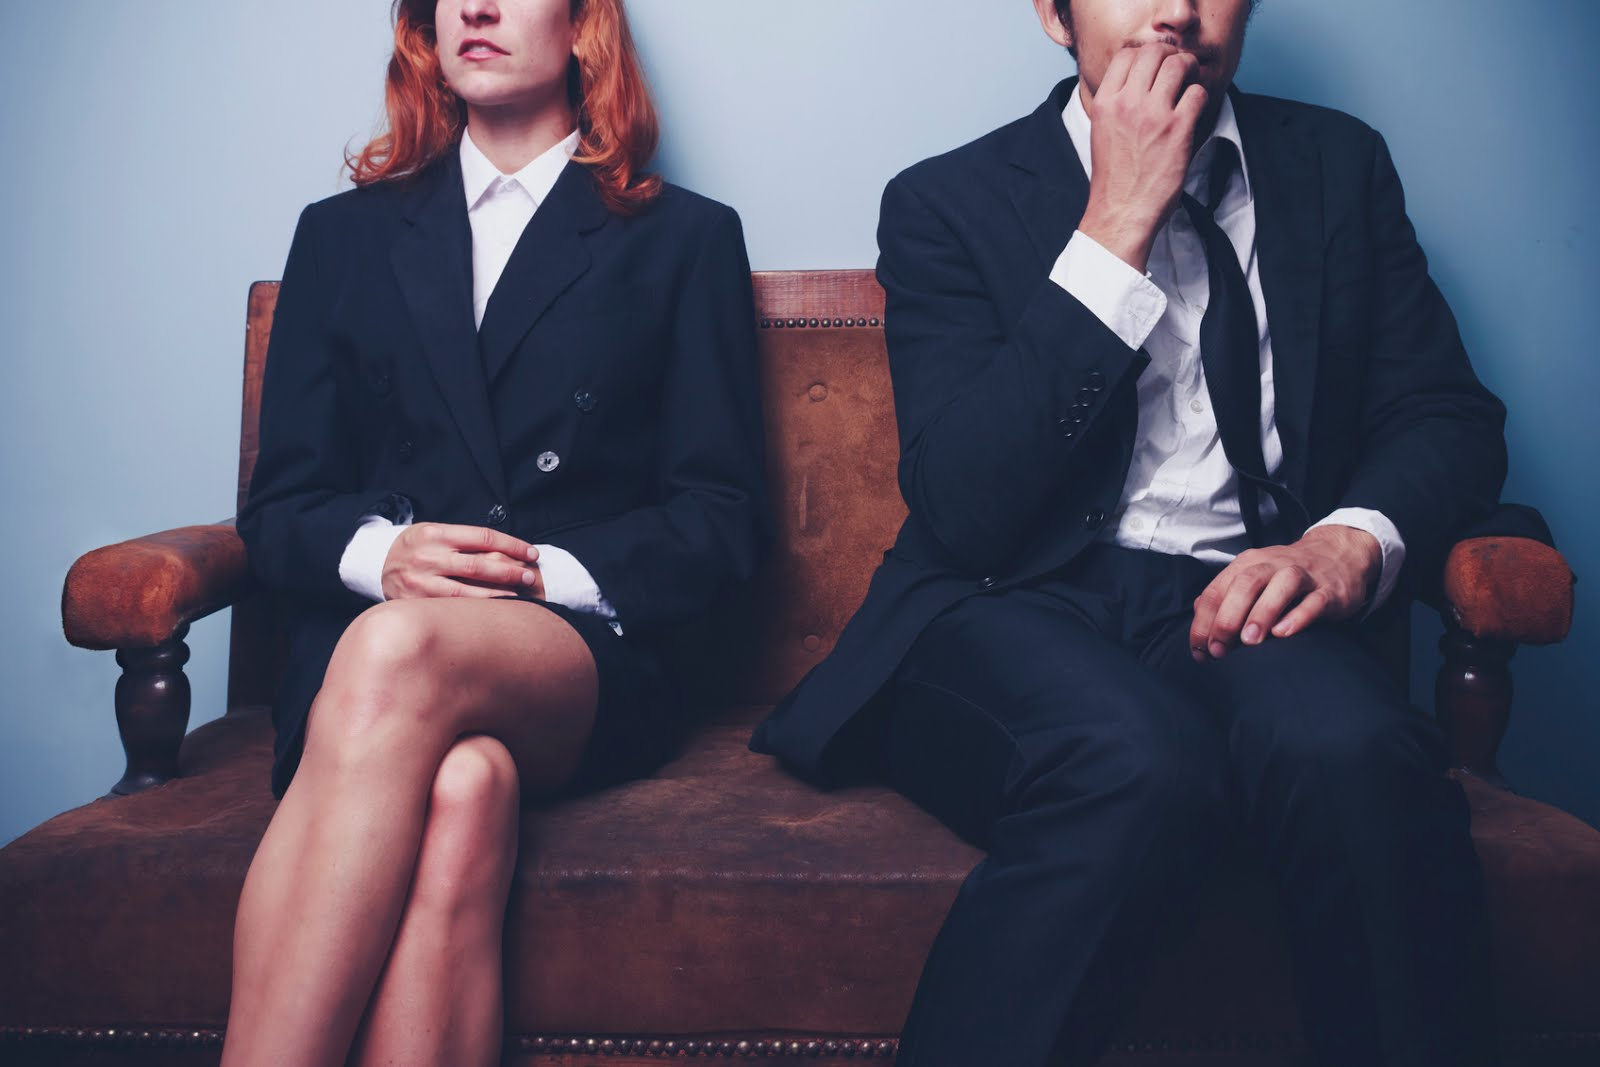 the scariest job interview mistakes and how to avoid them you get in the interview confident and blank out now you forgot the of the person interviewing you try this repeat their out loud over